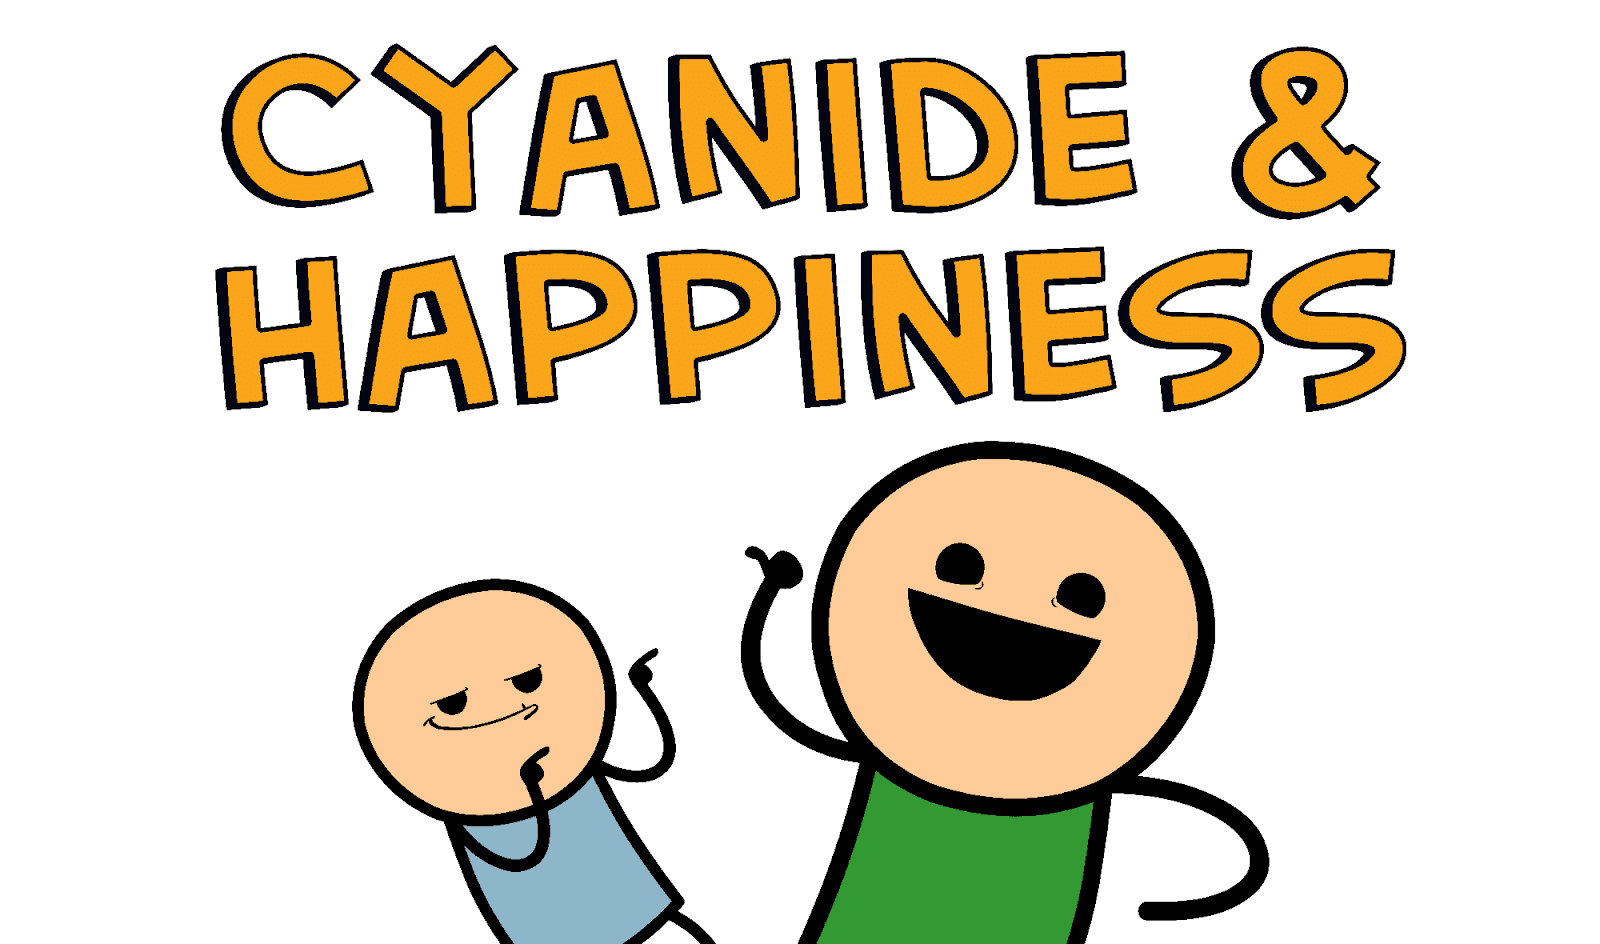 cyanide happiness is creating